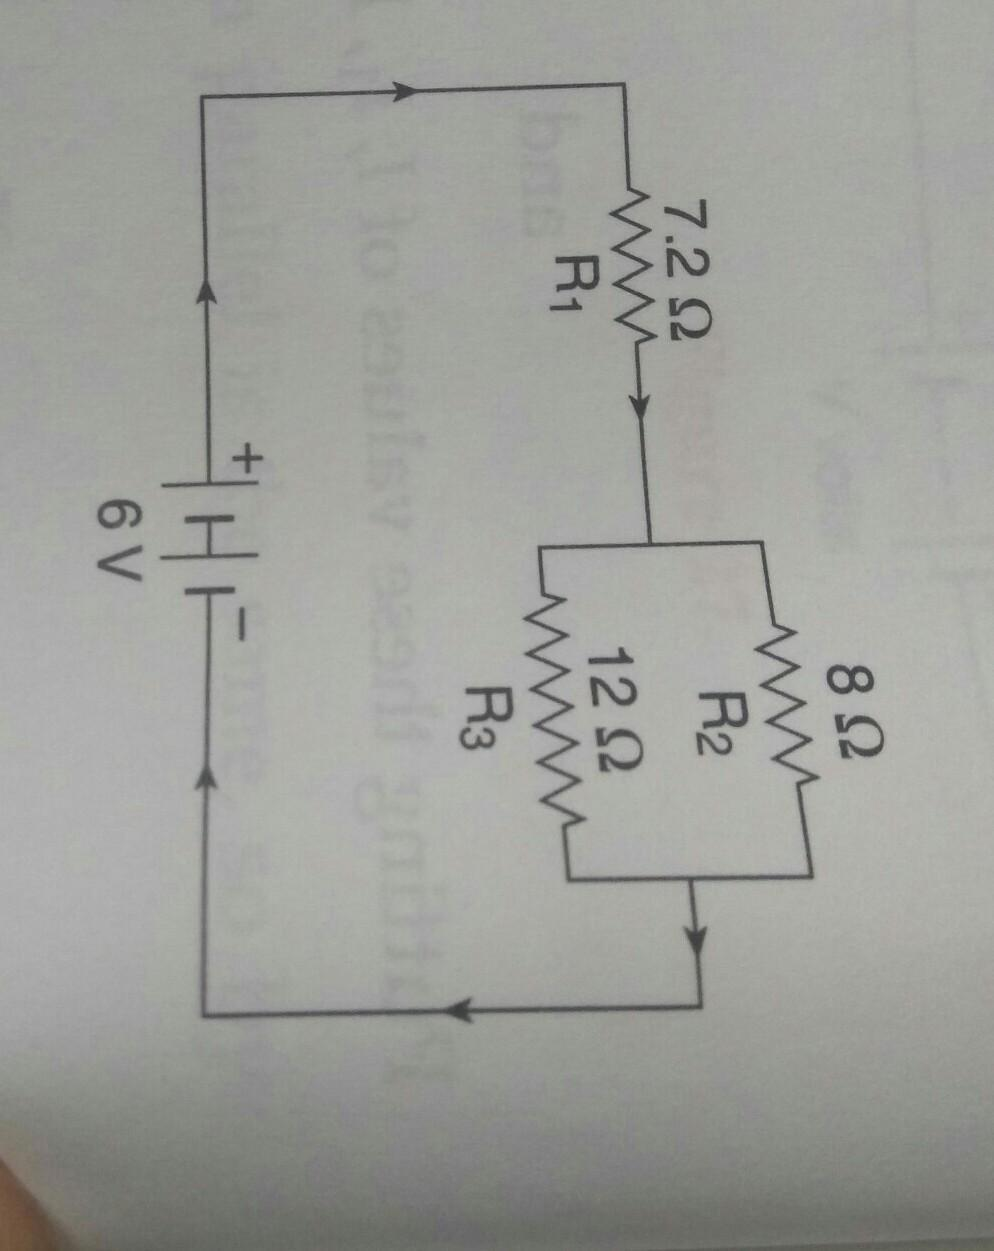 hight resolution of find thr answers as fast as u canin circuit diagram given alongsidecircuit diagram u 16